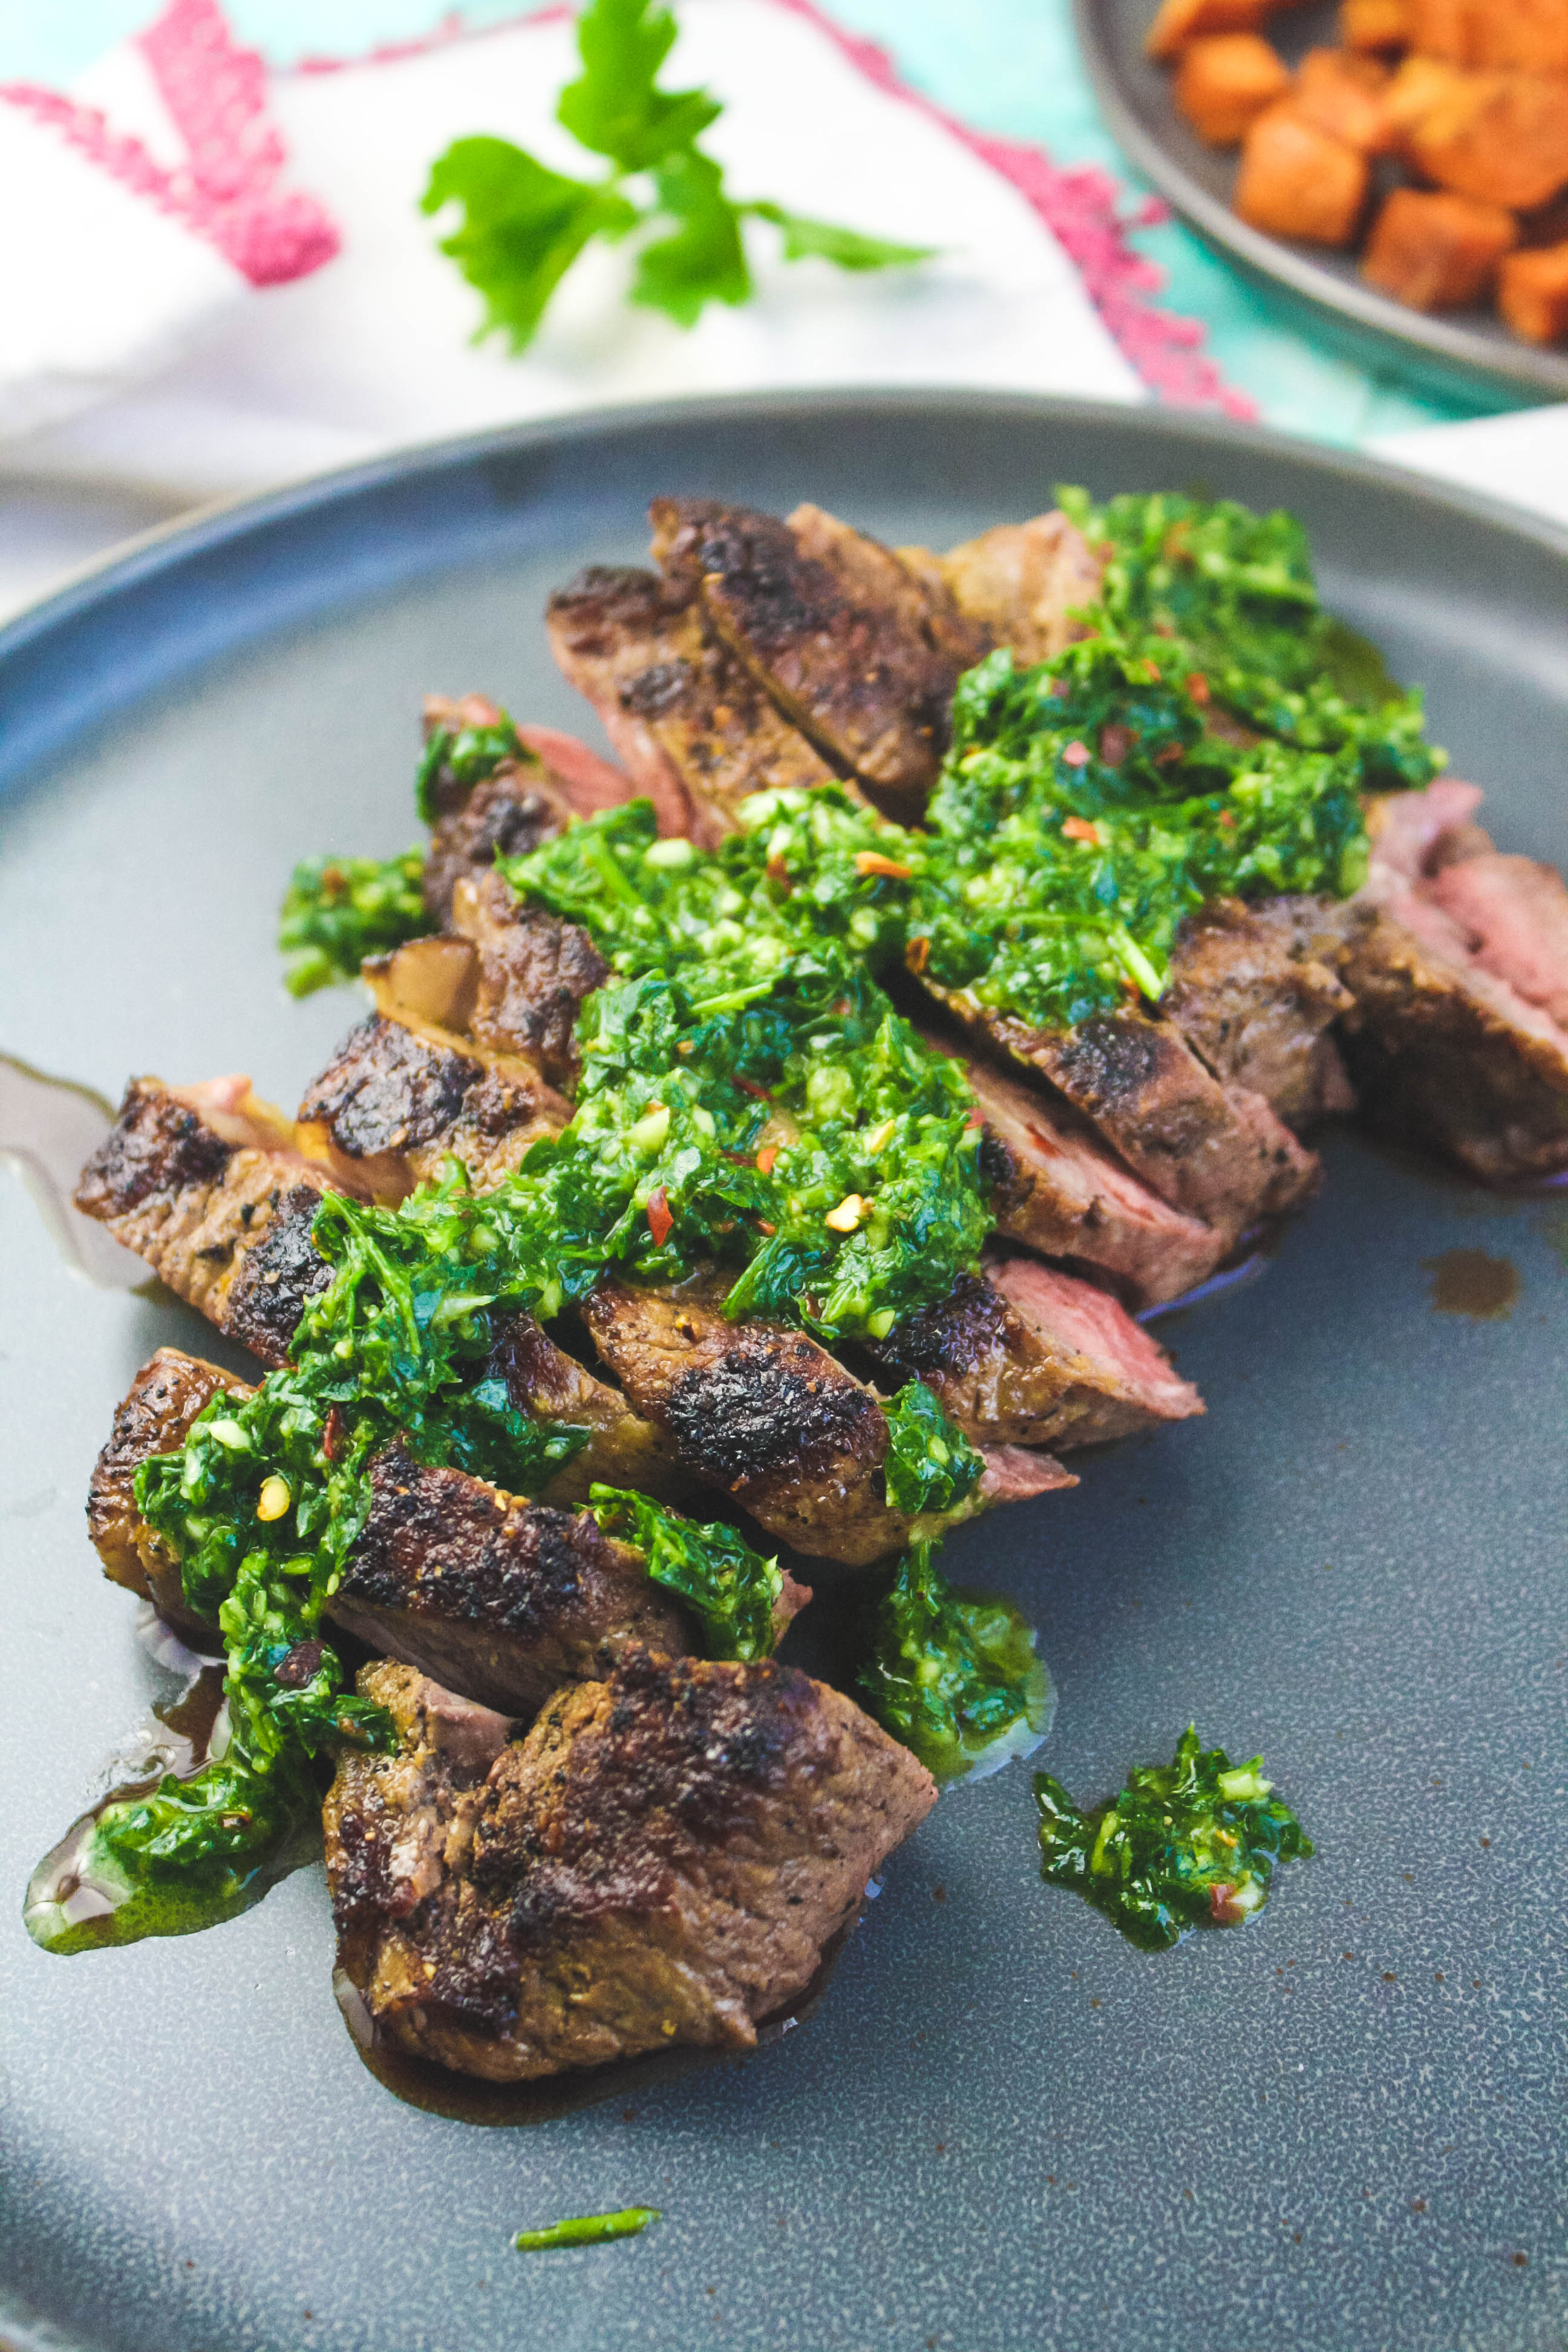 Skillet-Cooked NY Strip Steak with Chimichurri Sauce is full of great flavor for a main dish. Skillet-Cooked NY Strip Steak with Chimichurri Sauce is easy to make for a lovely main dish.